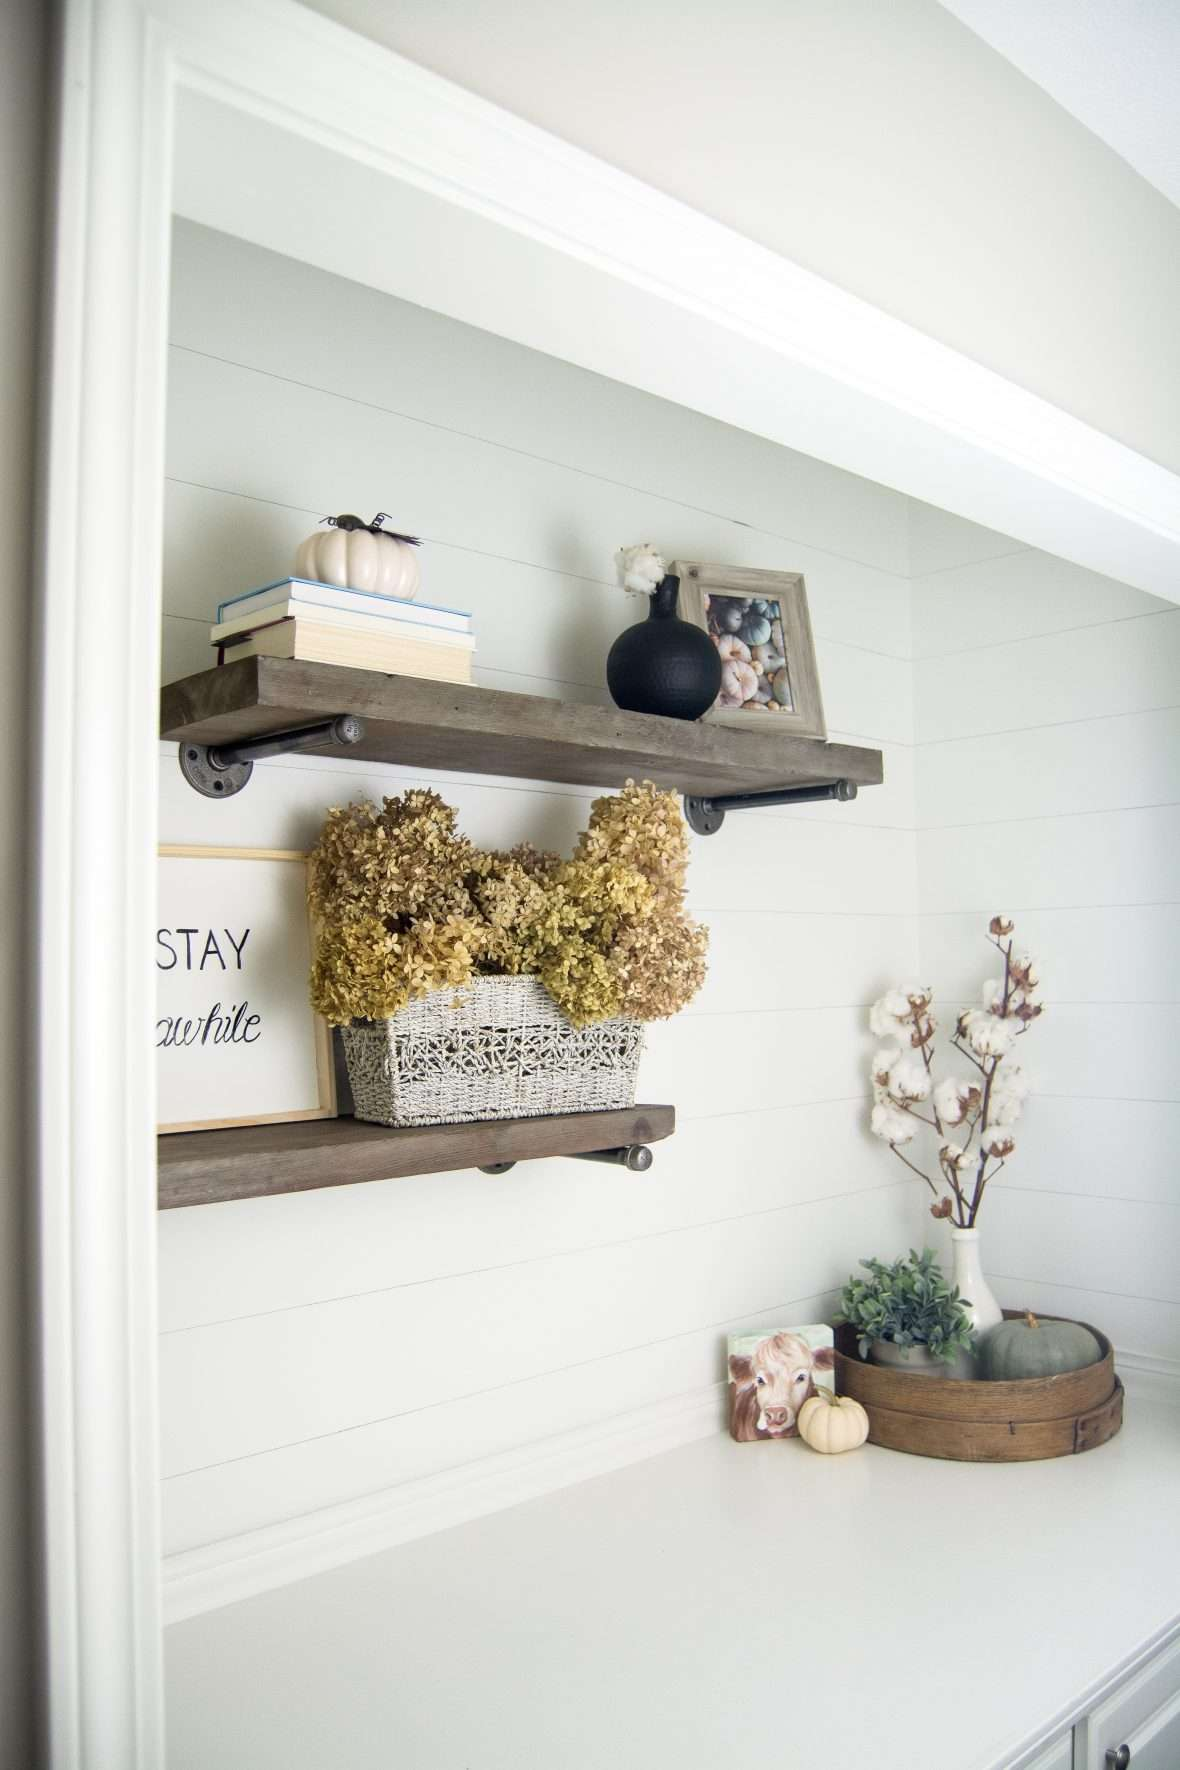 DIY Shiplap | Shiplap The Easy Way